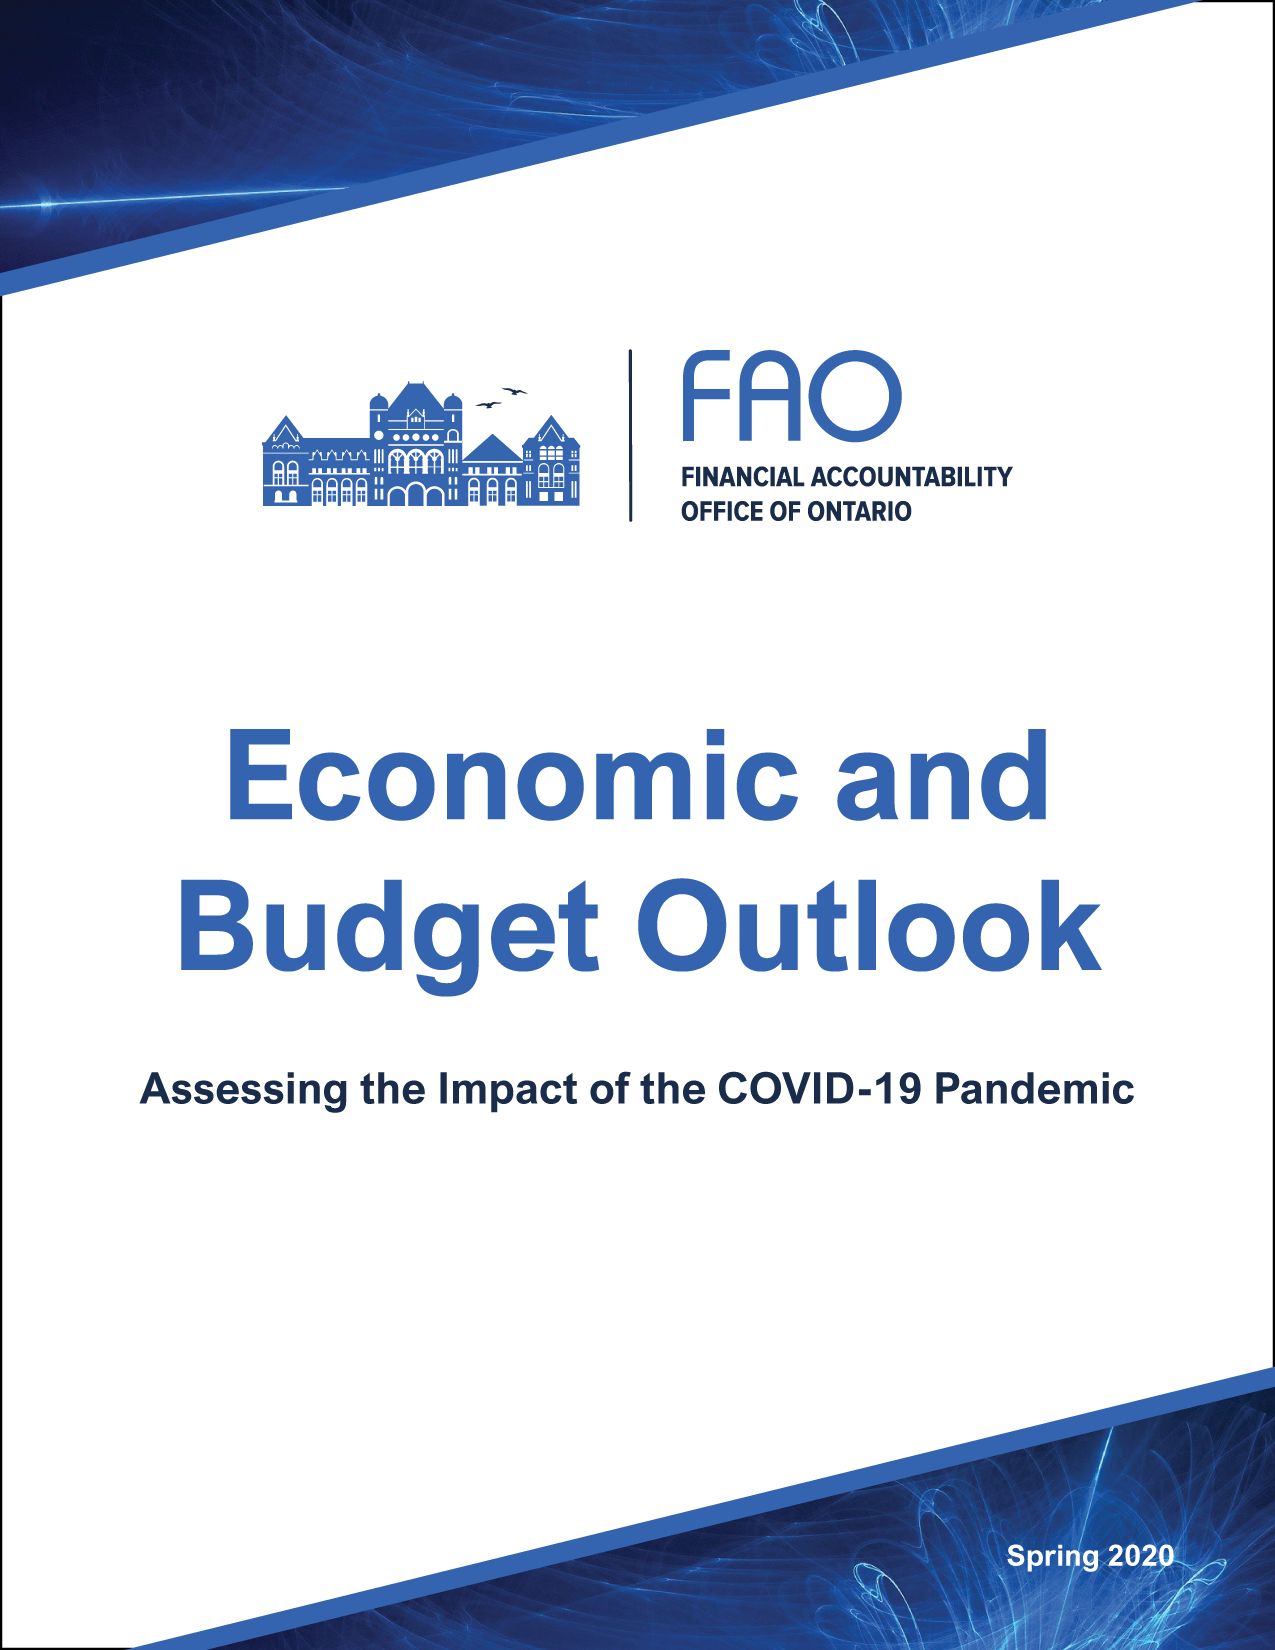 Economic and Budget Outlook, Spring 2020